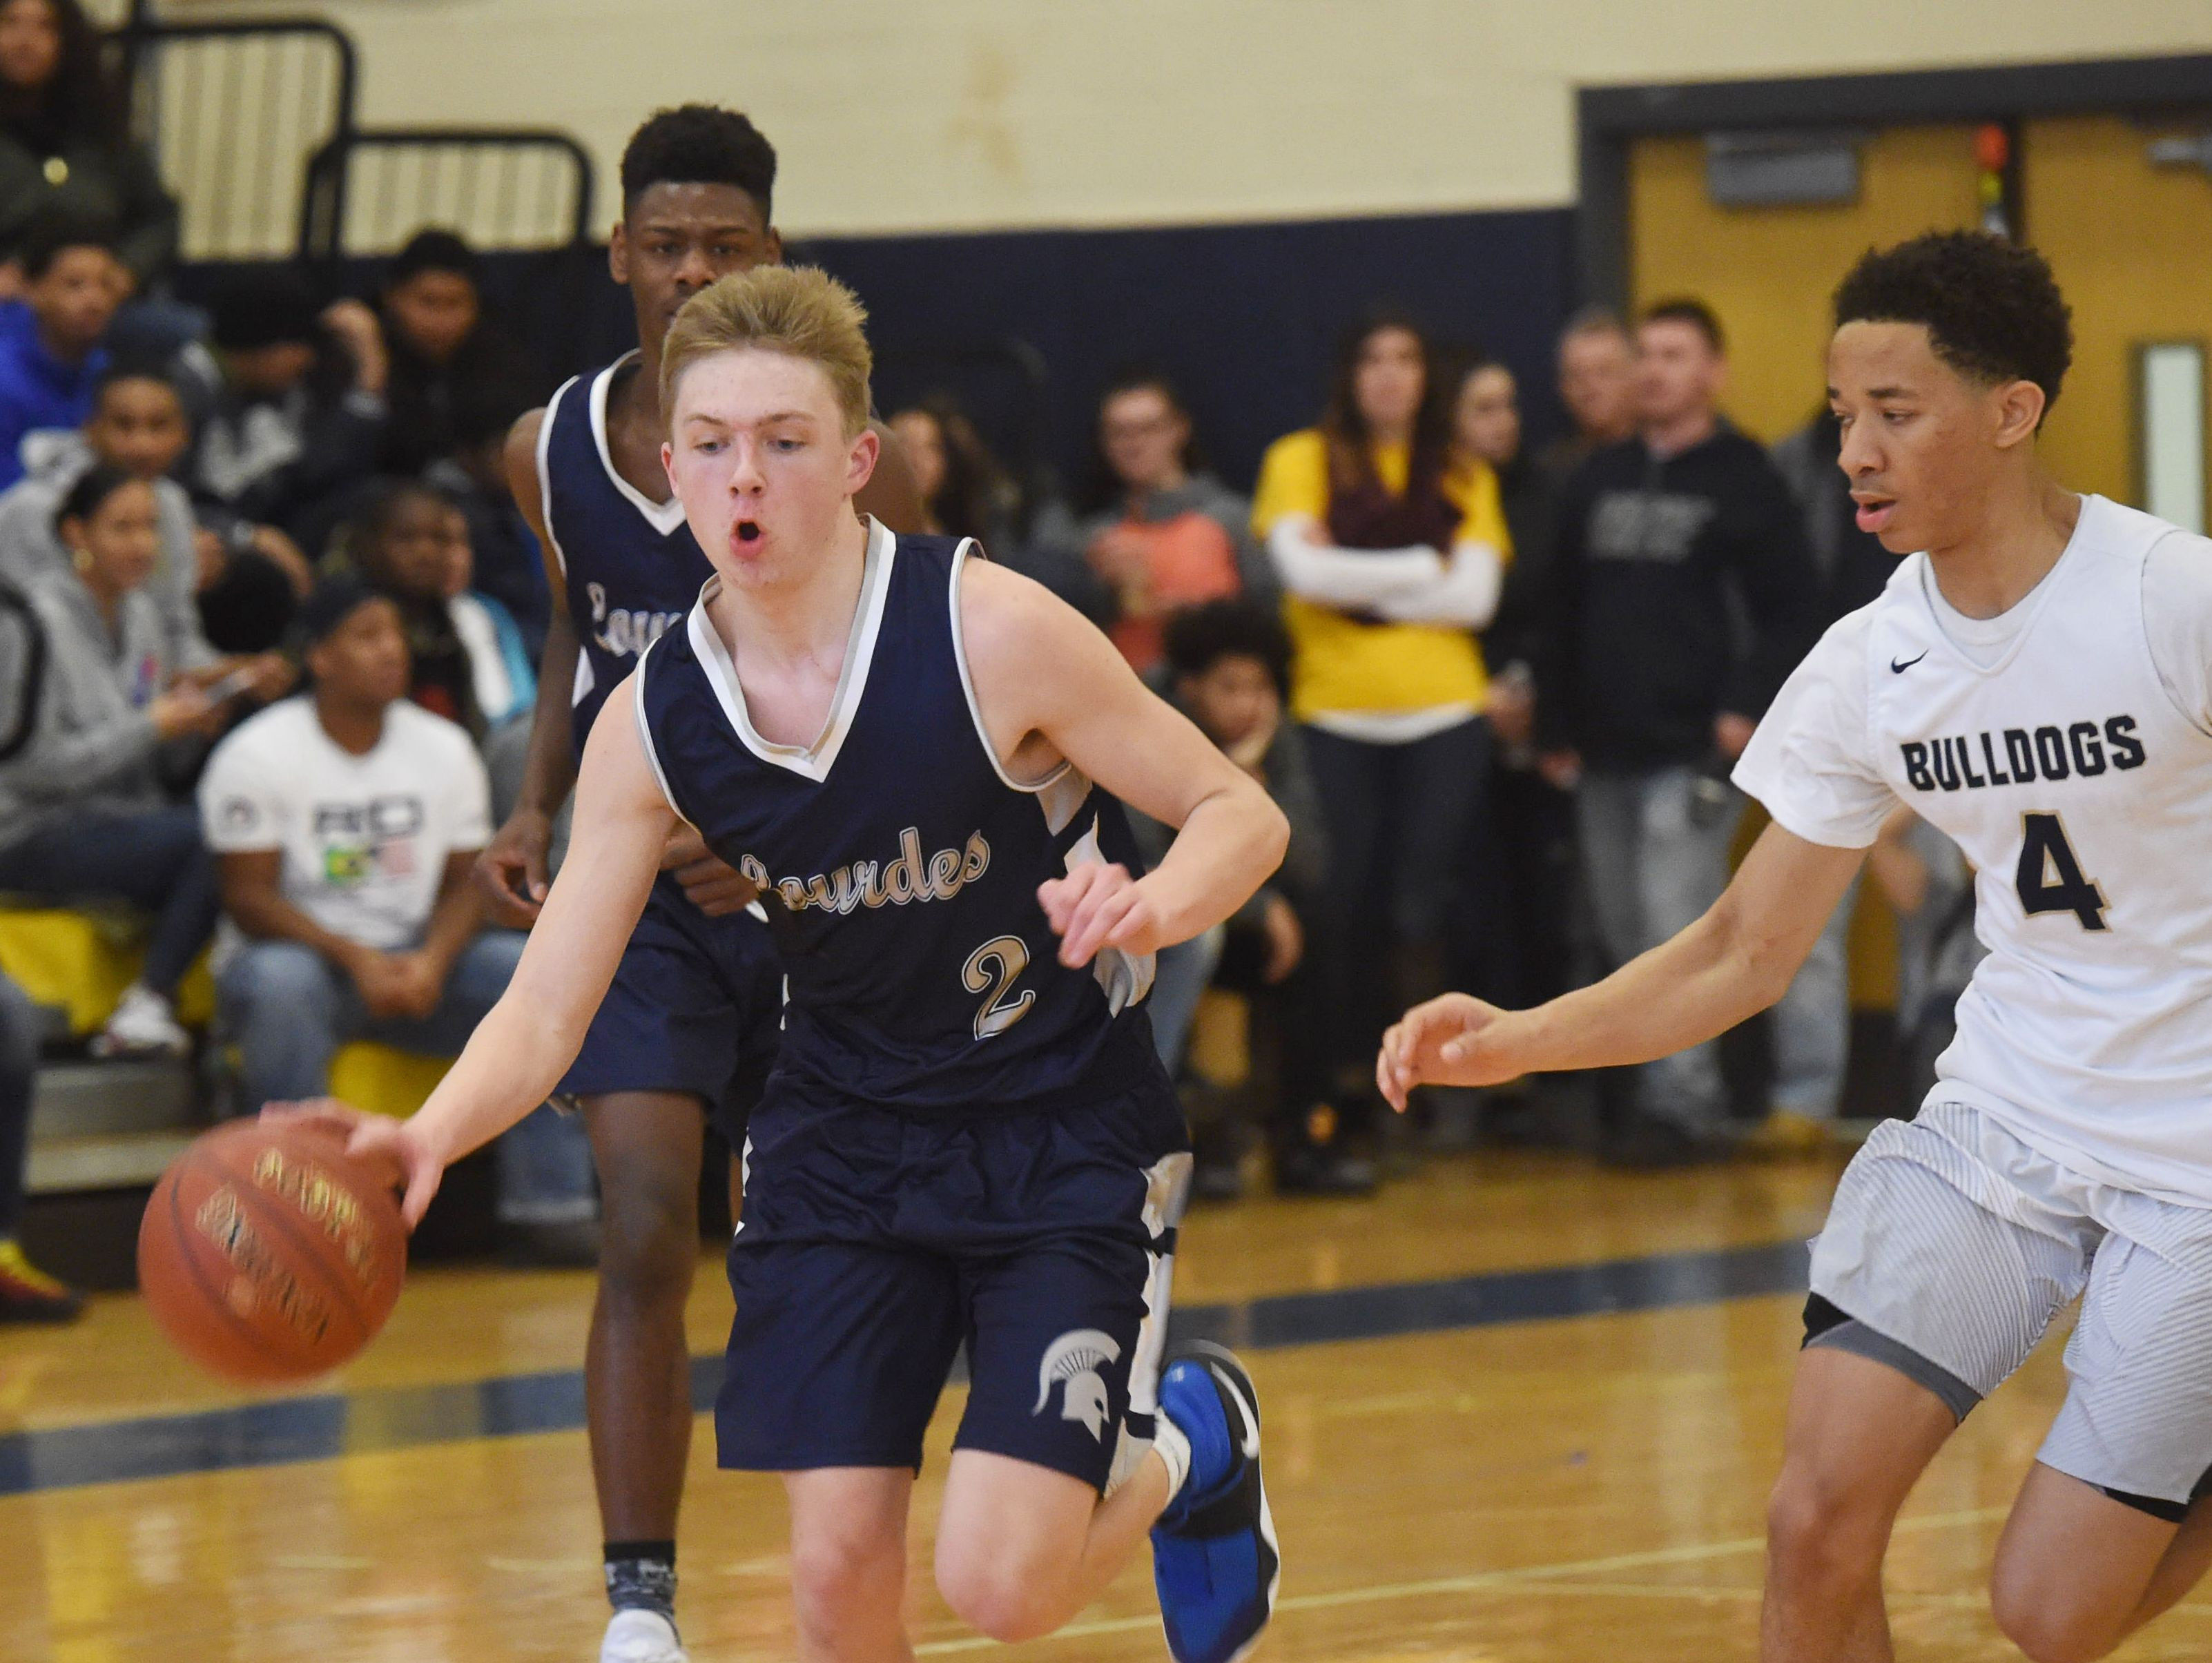 Our Lady of Lourdes' Joe Heavey, left, takes the ball down the court as Beacon's Brandon Evans, right, defends during a Jan. 14 game.